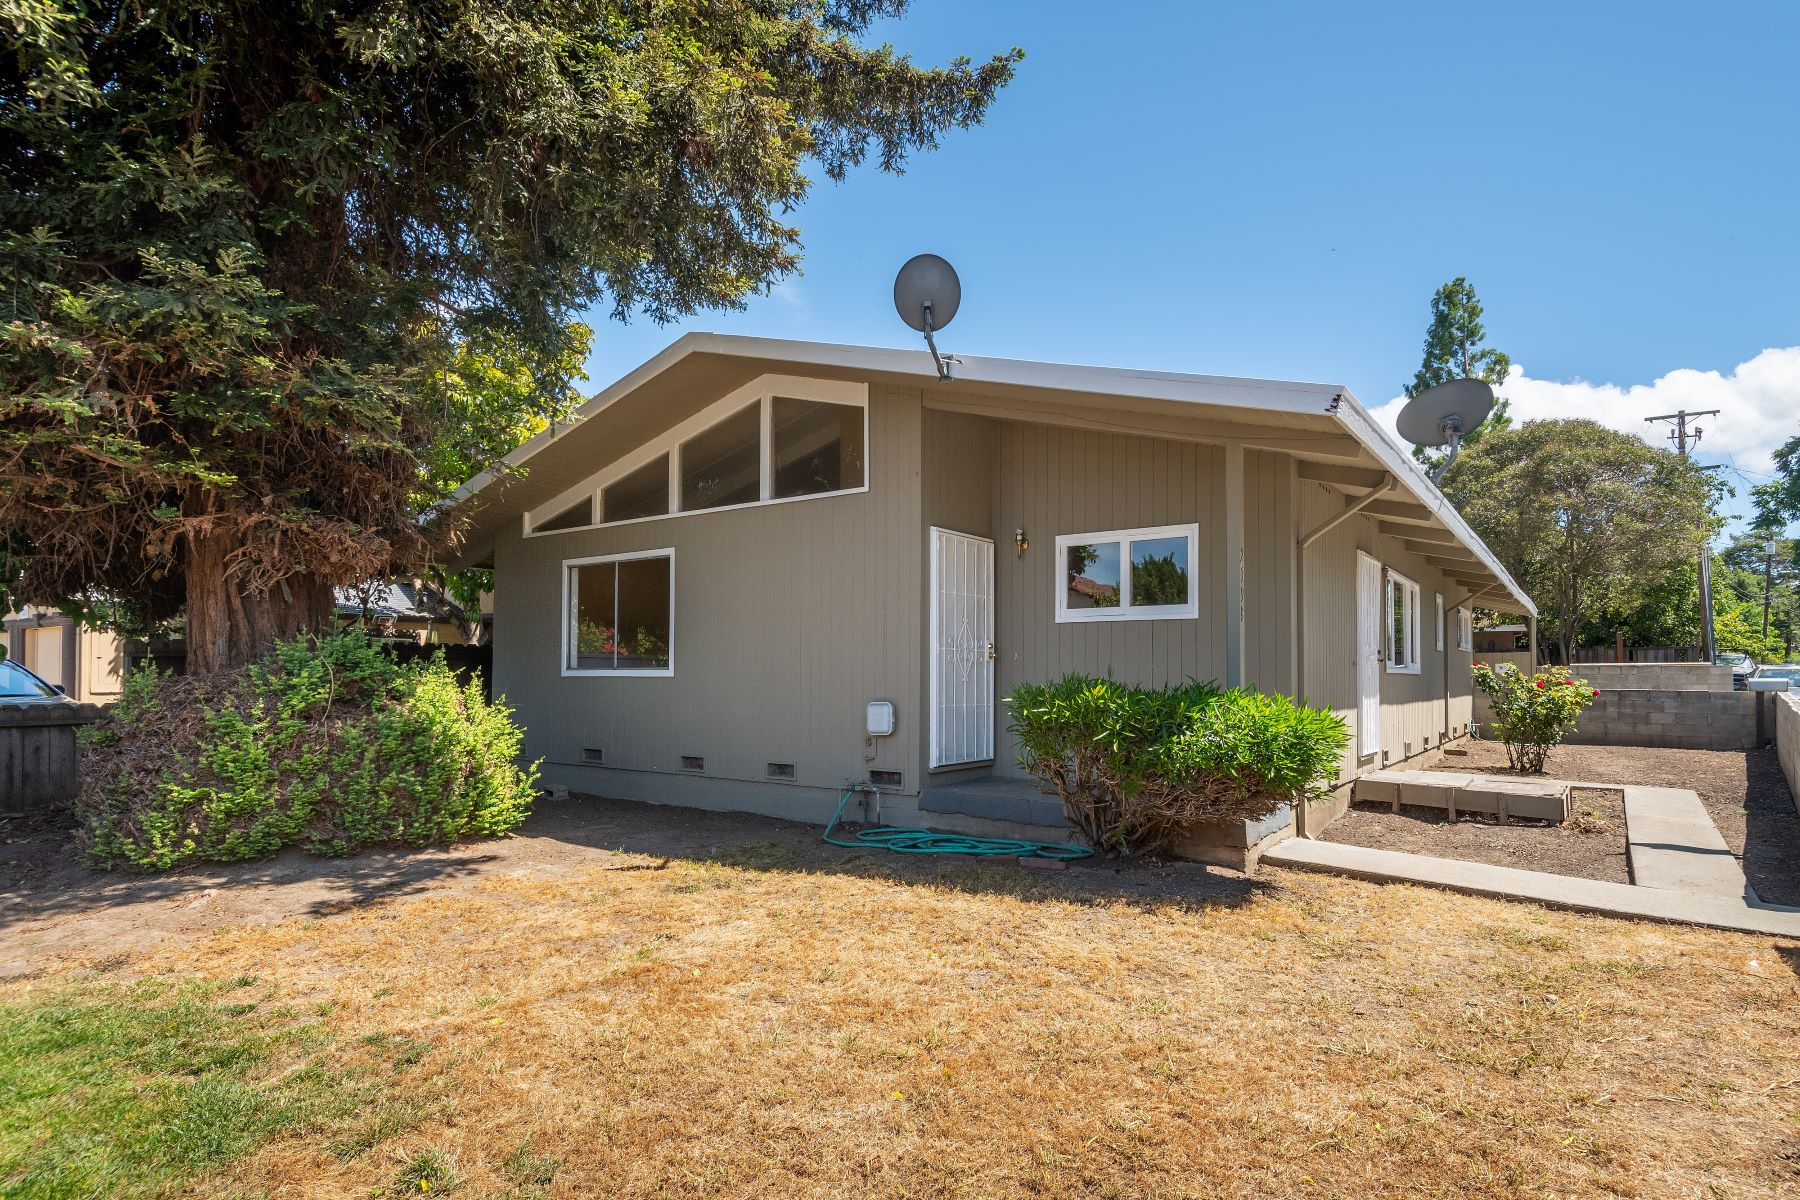 Single Family Homes for Sale at Opportunity Knocks for a Fixer Upper with Great Potential 2398 Palo Verde Avenue East Palo Alto, California 94303 United States